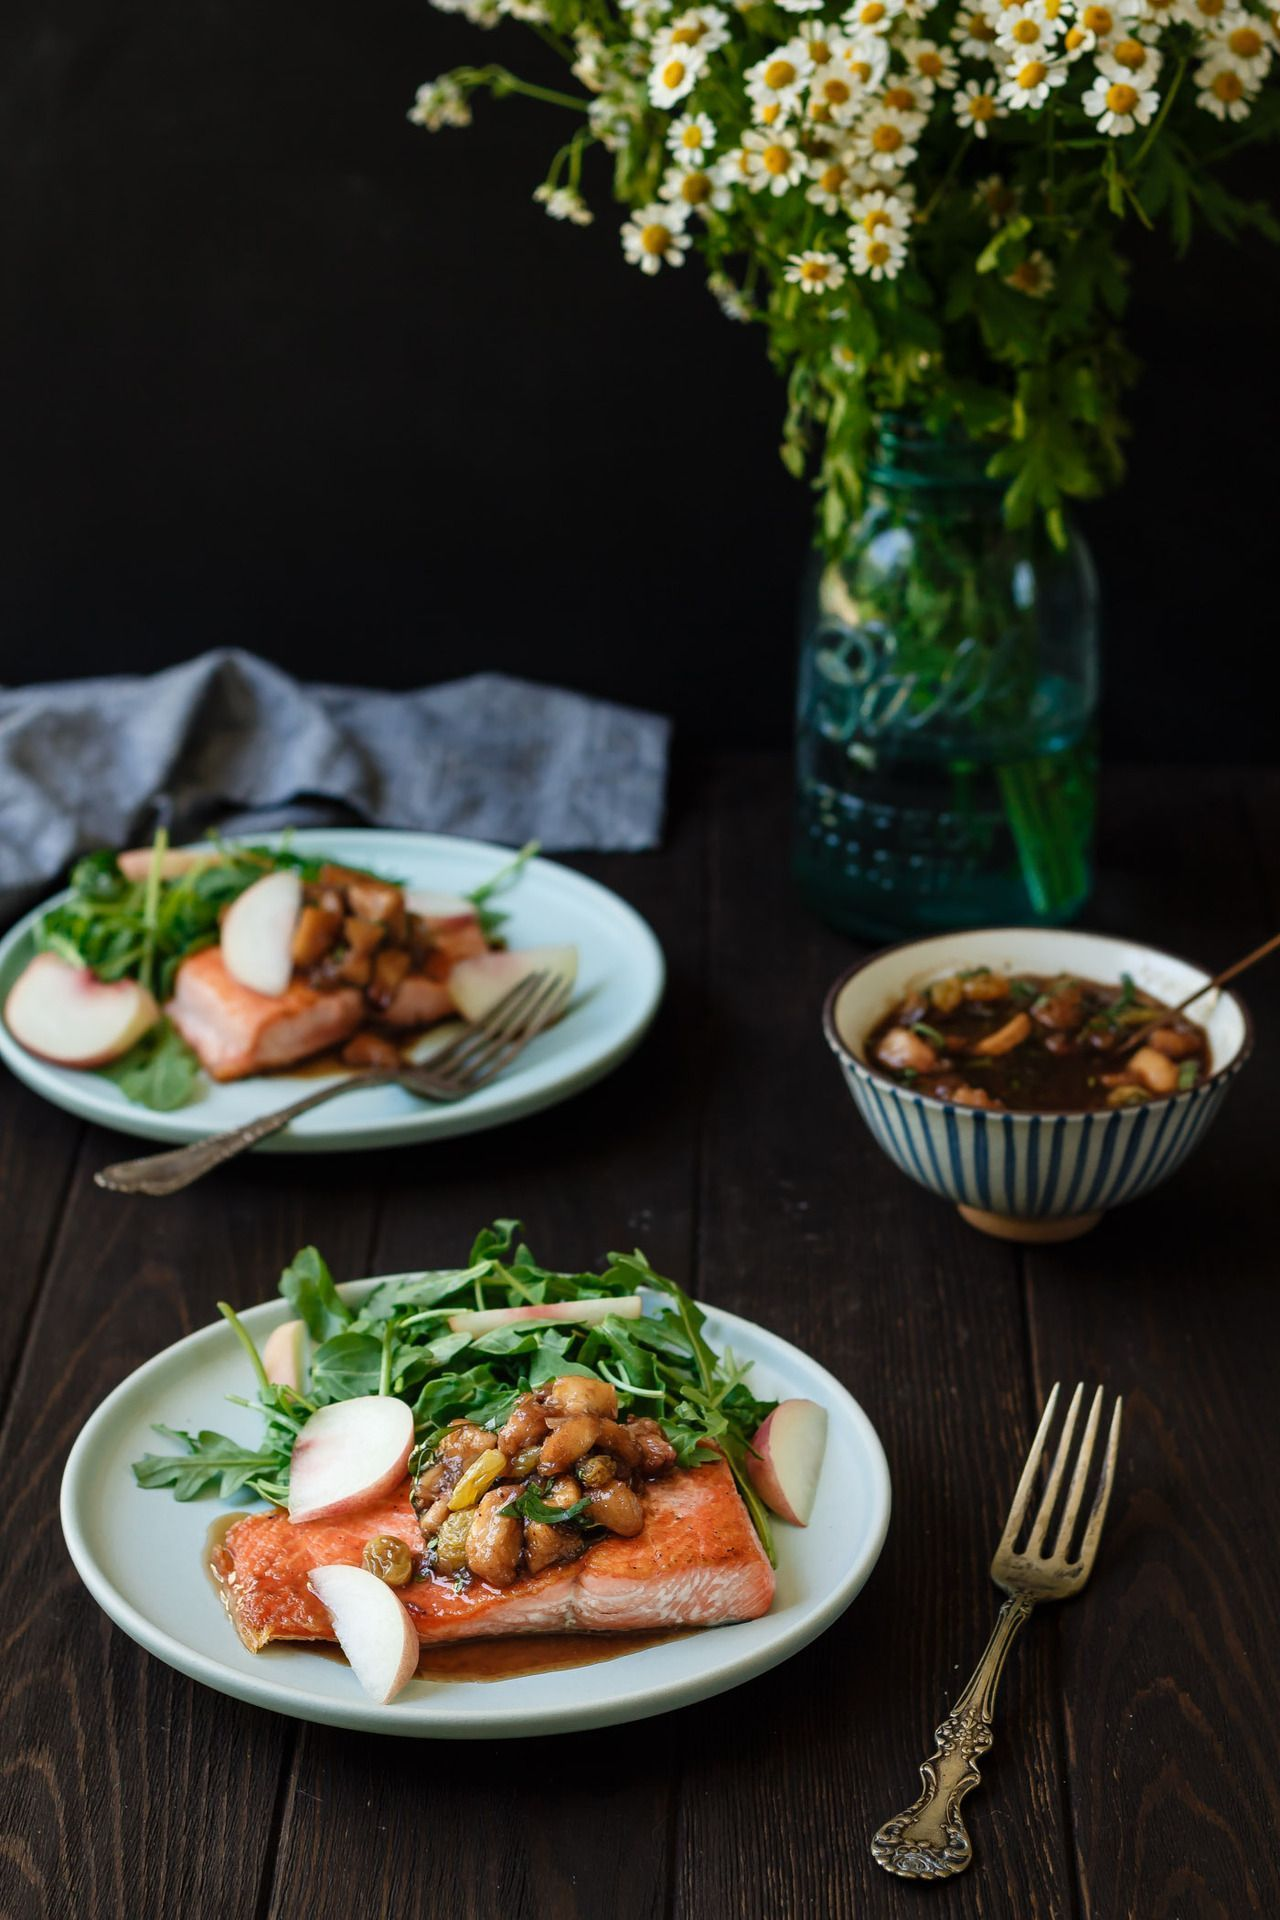 Pan Seared Salmon with Peach Basil Chutney #searedsalmonrecipes Pan Seared Salmon with Peach Basil Chutney #searedsalmonrecipes